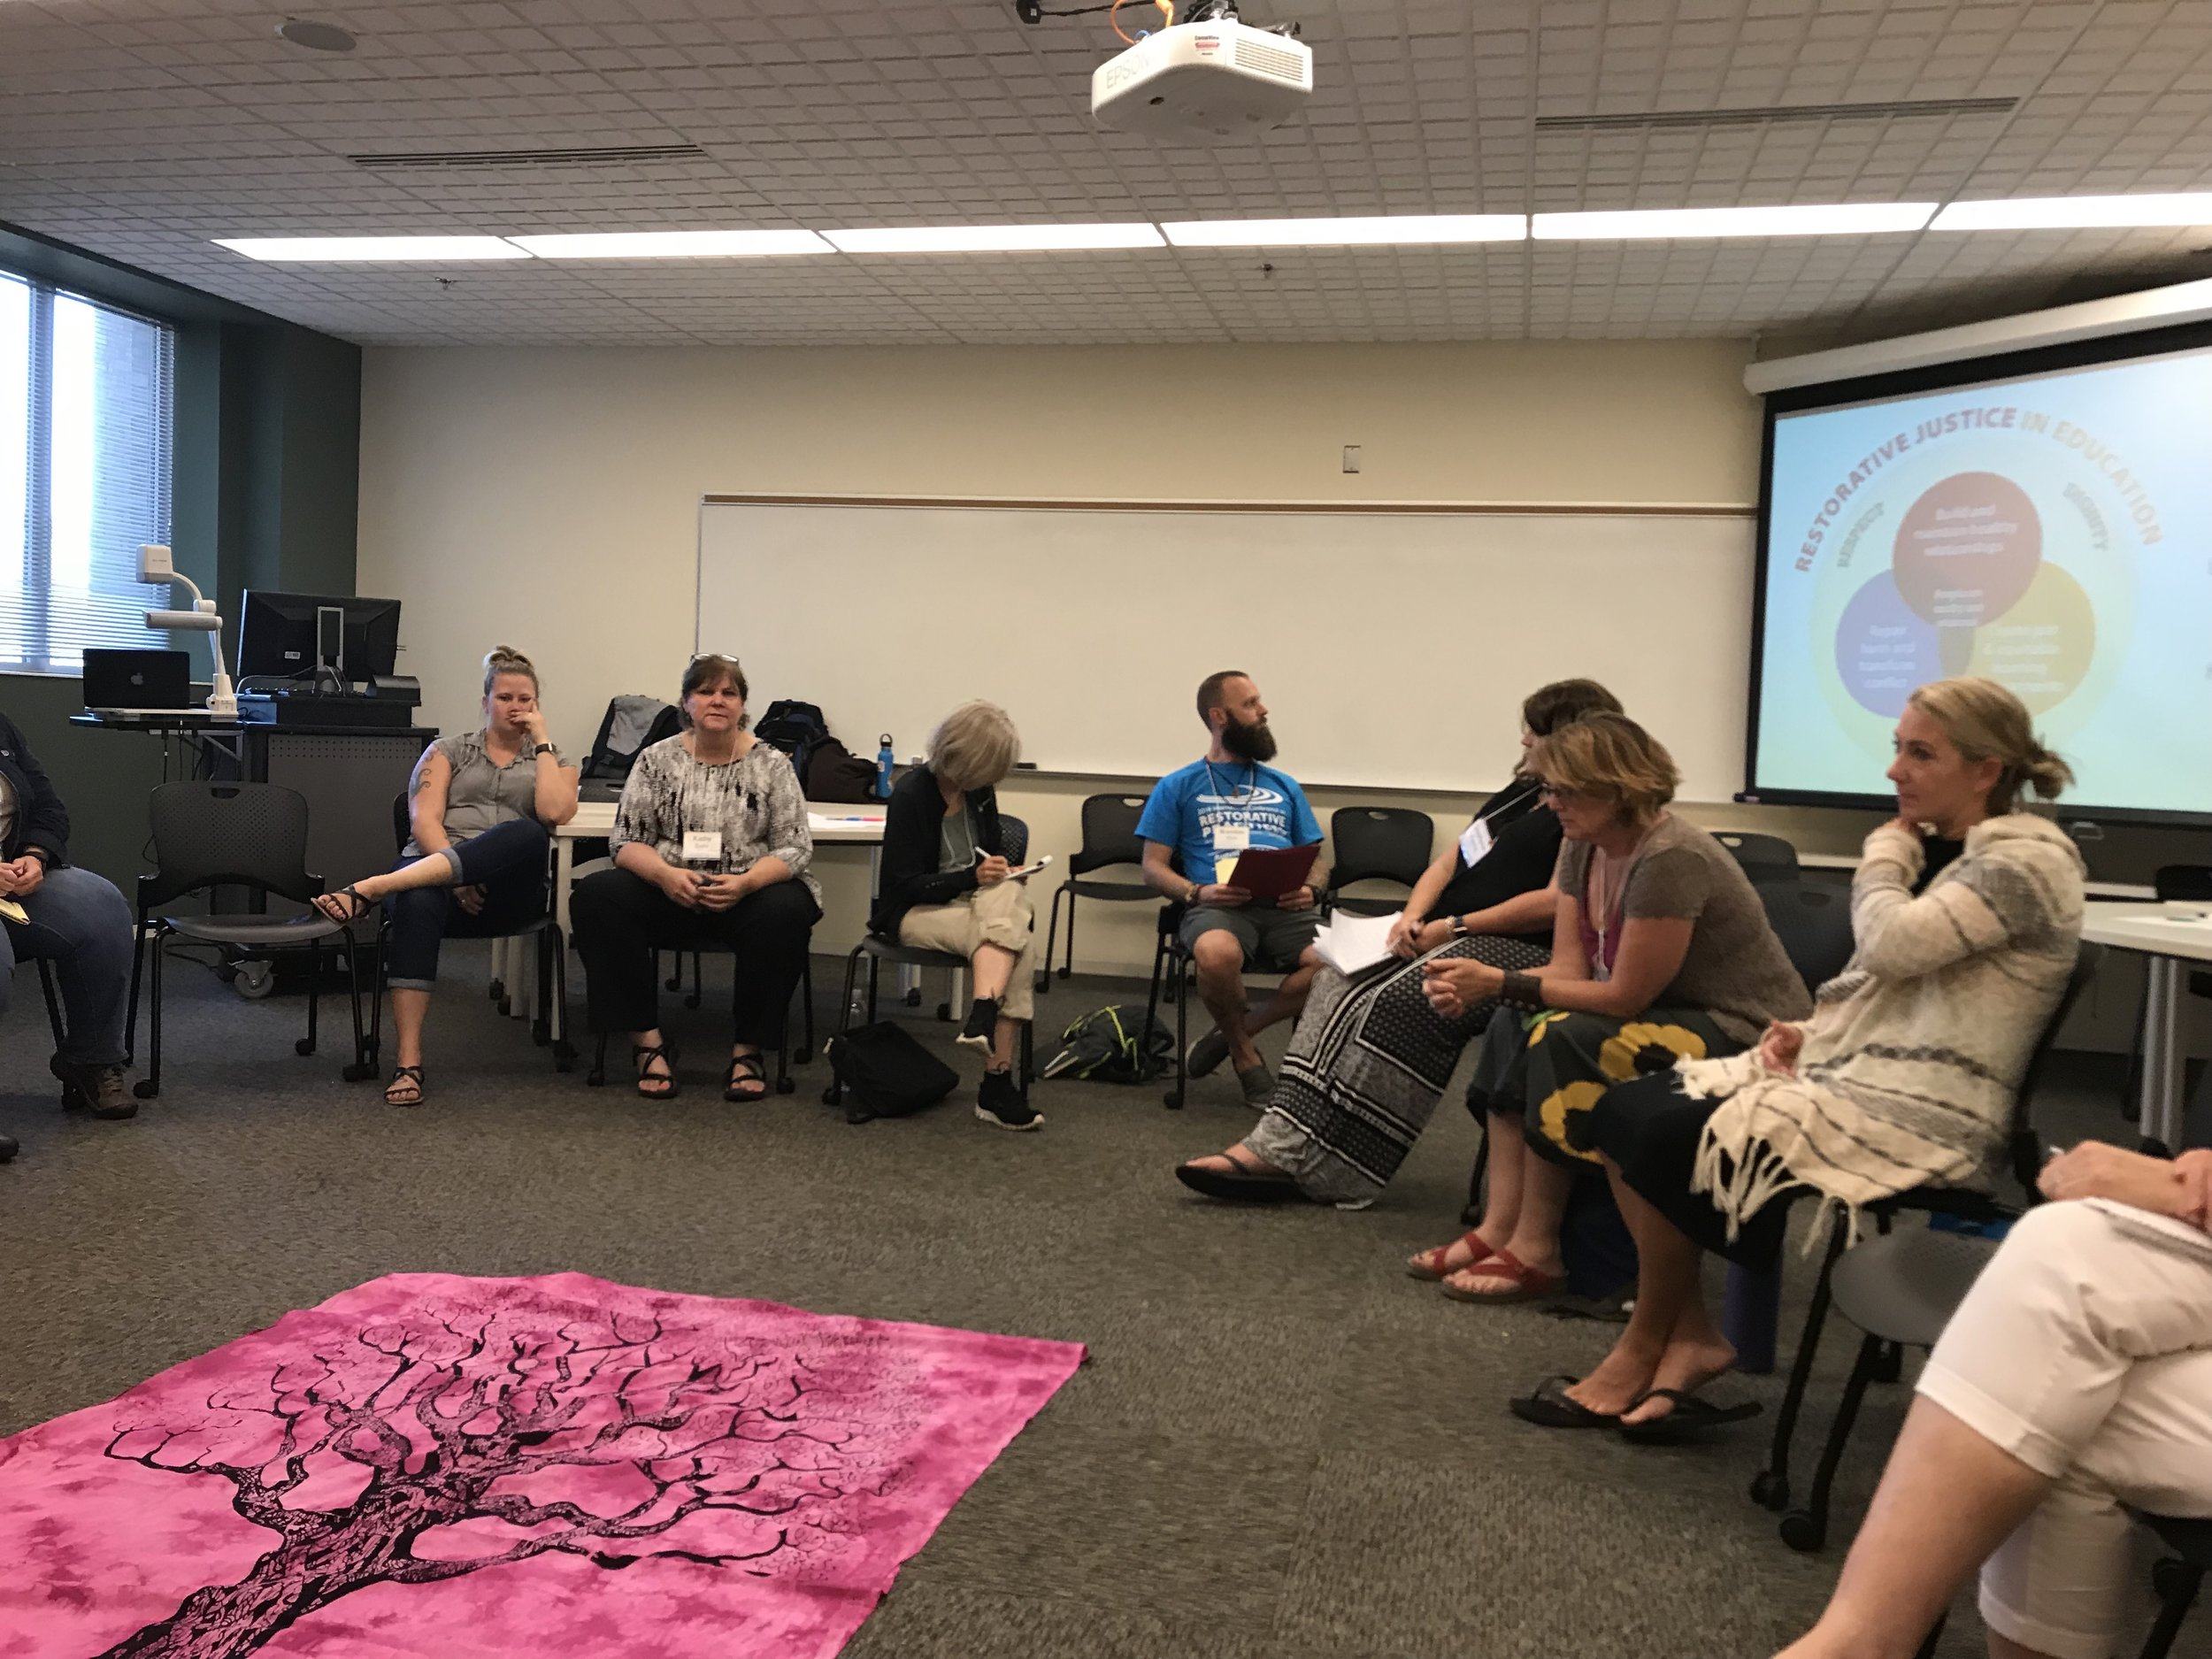 Kathy Evans leading a discussion Restorative Practices for Students with Disabilities